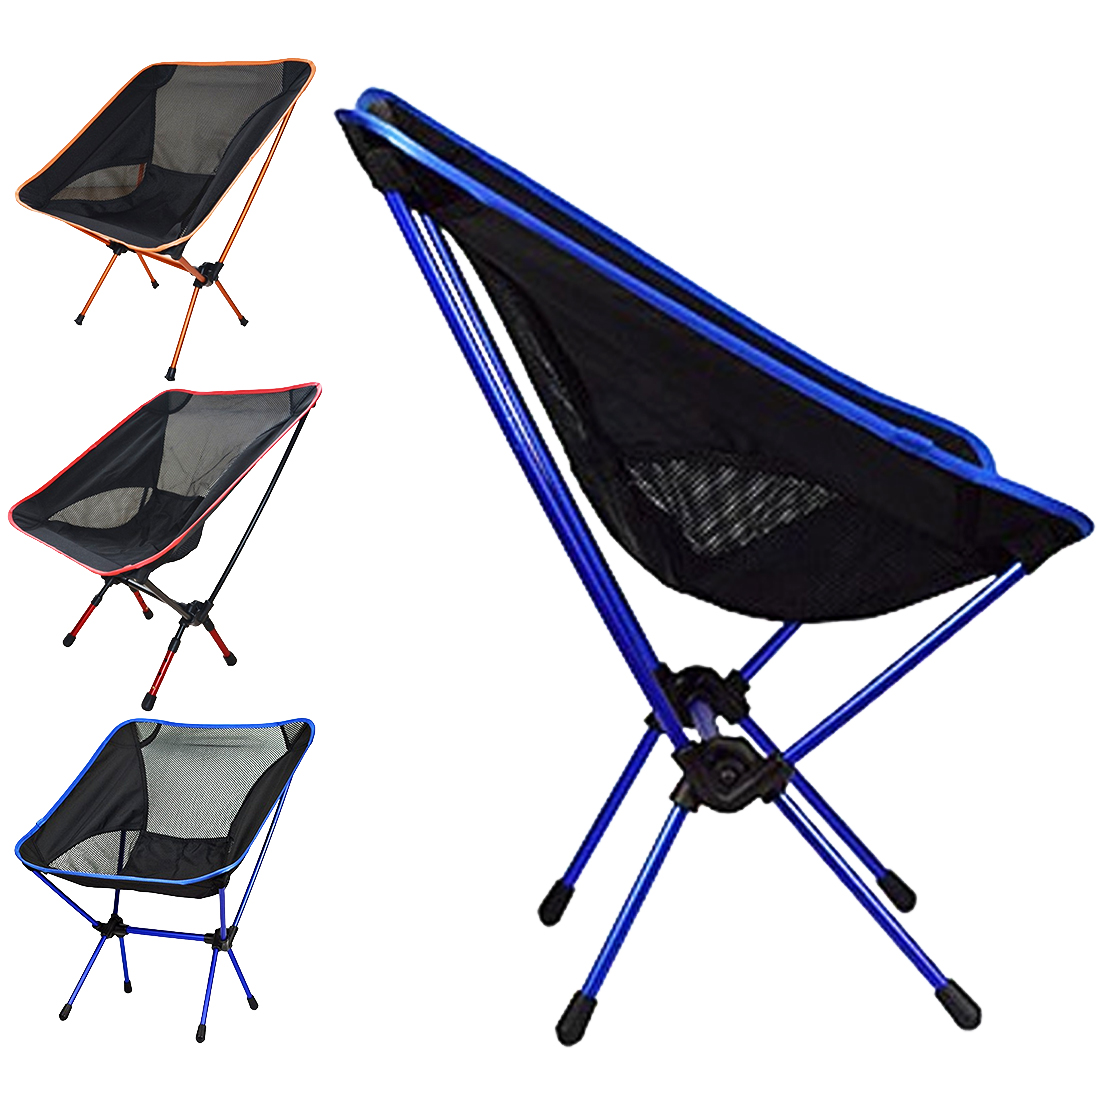 Hot New Portable Seat Lightweight Fishing Chair Solid Camping Stool Outdoor Folding Furniture Garden Portable Ultra Light Chairs